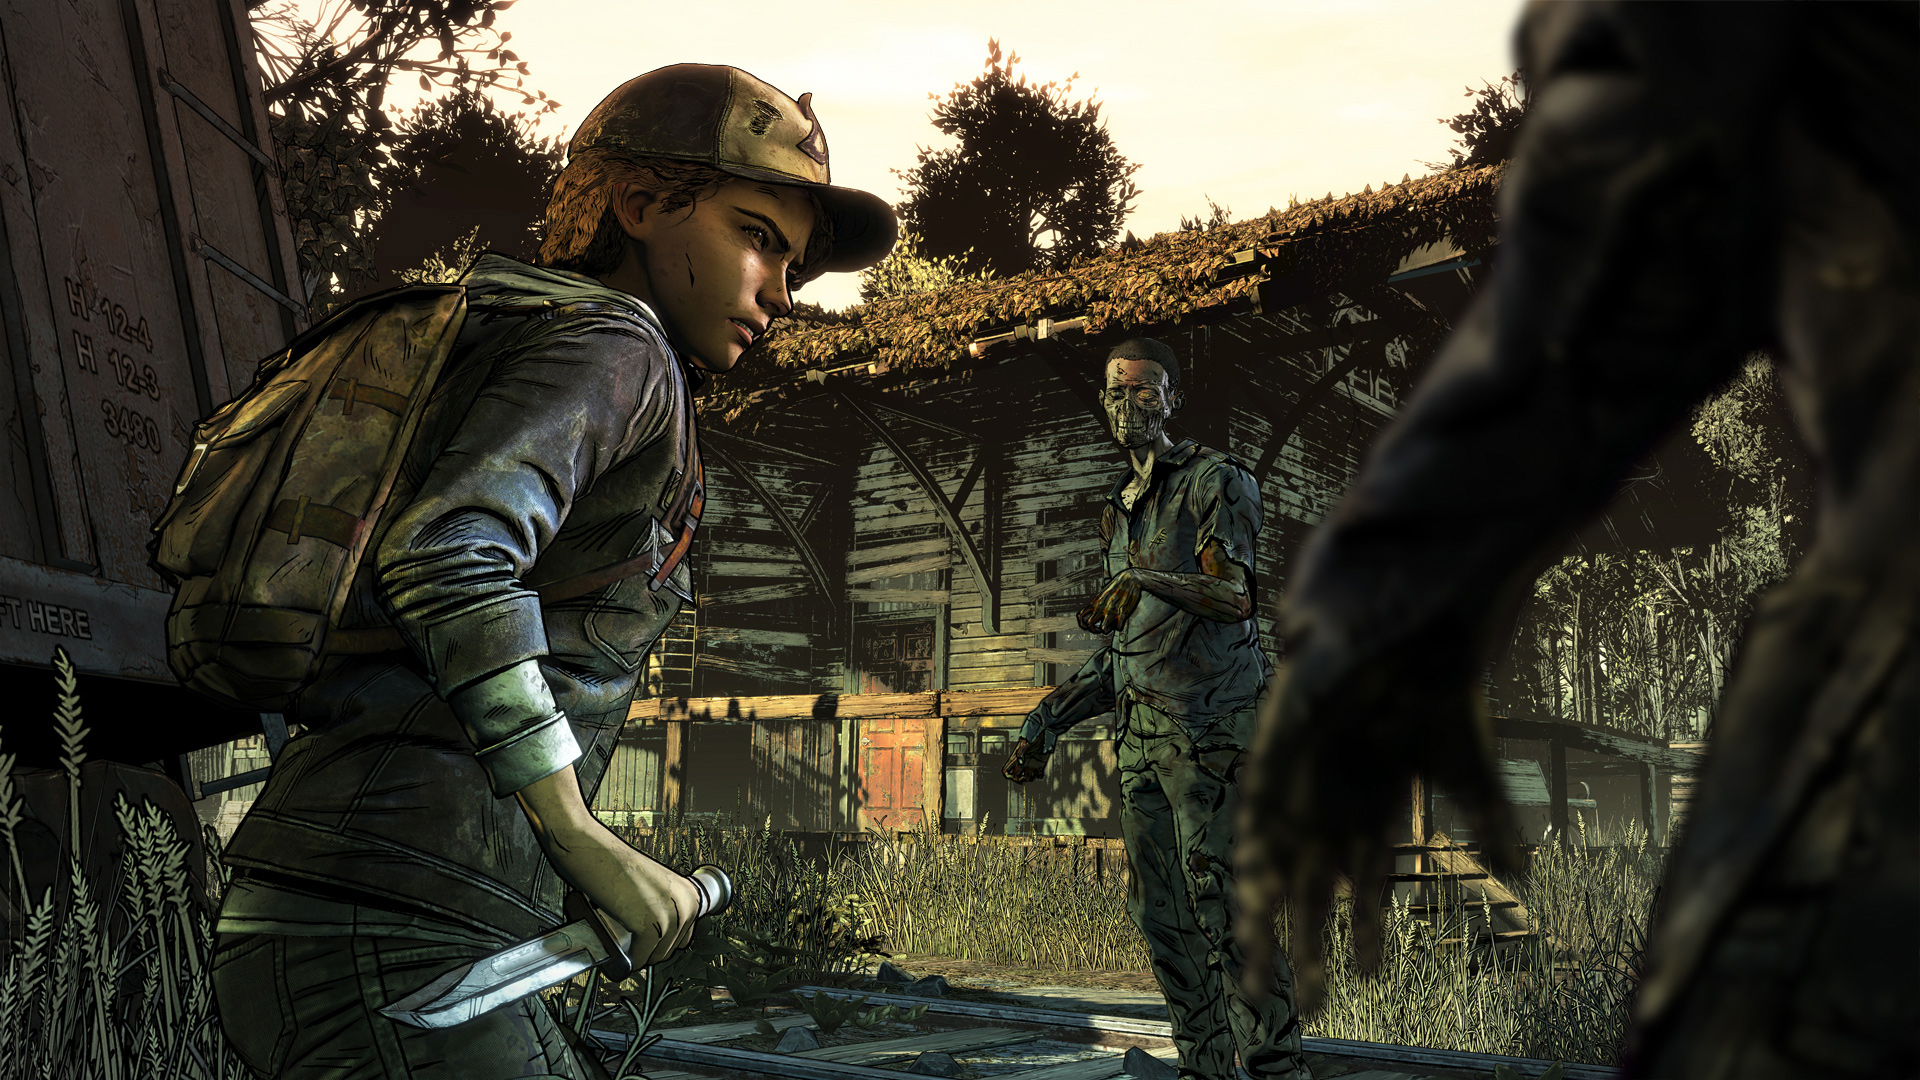 Create a save file for The Walking Dead with Telltale's Final Season